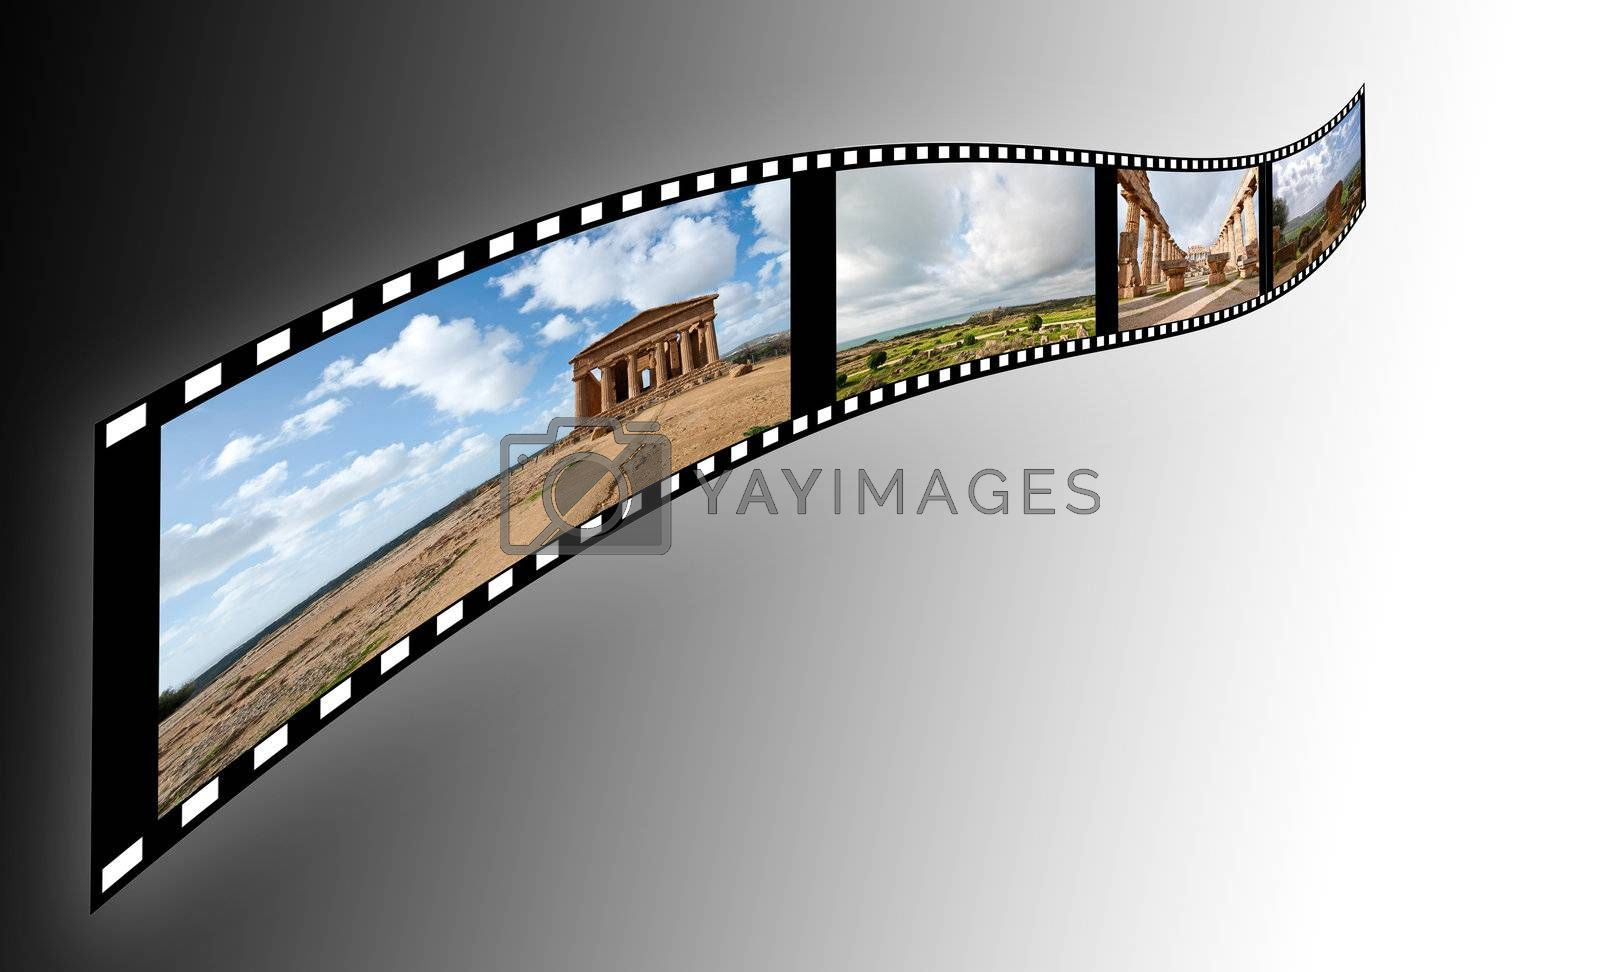 film with pictures of the Valley of the Temples in Sicily on a soft background